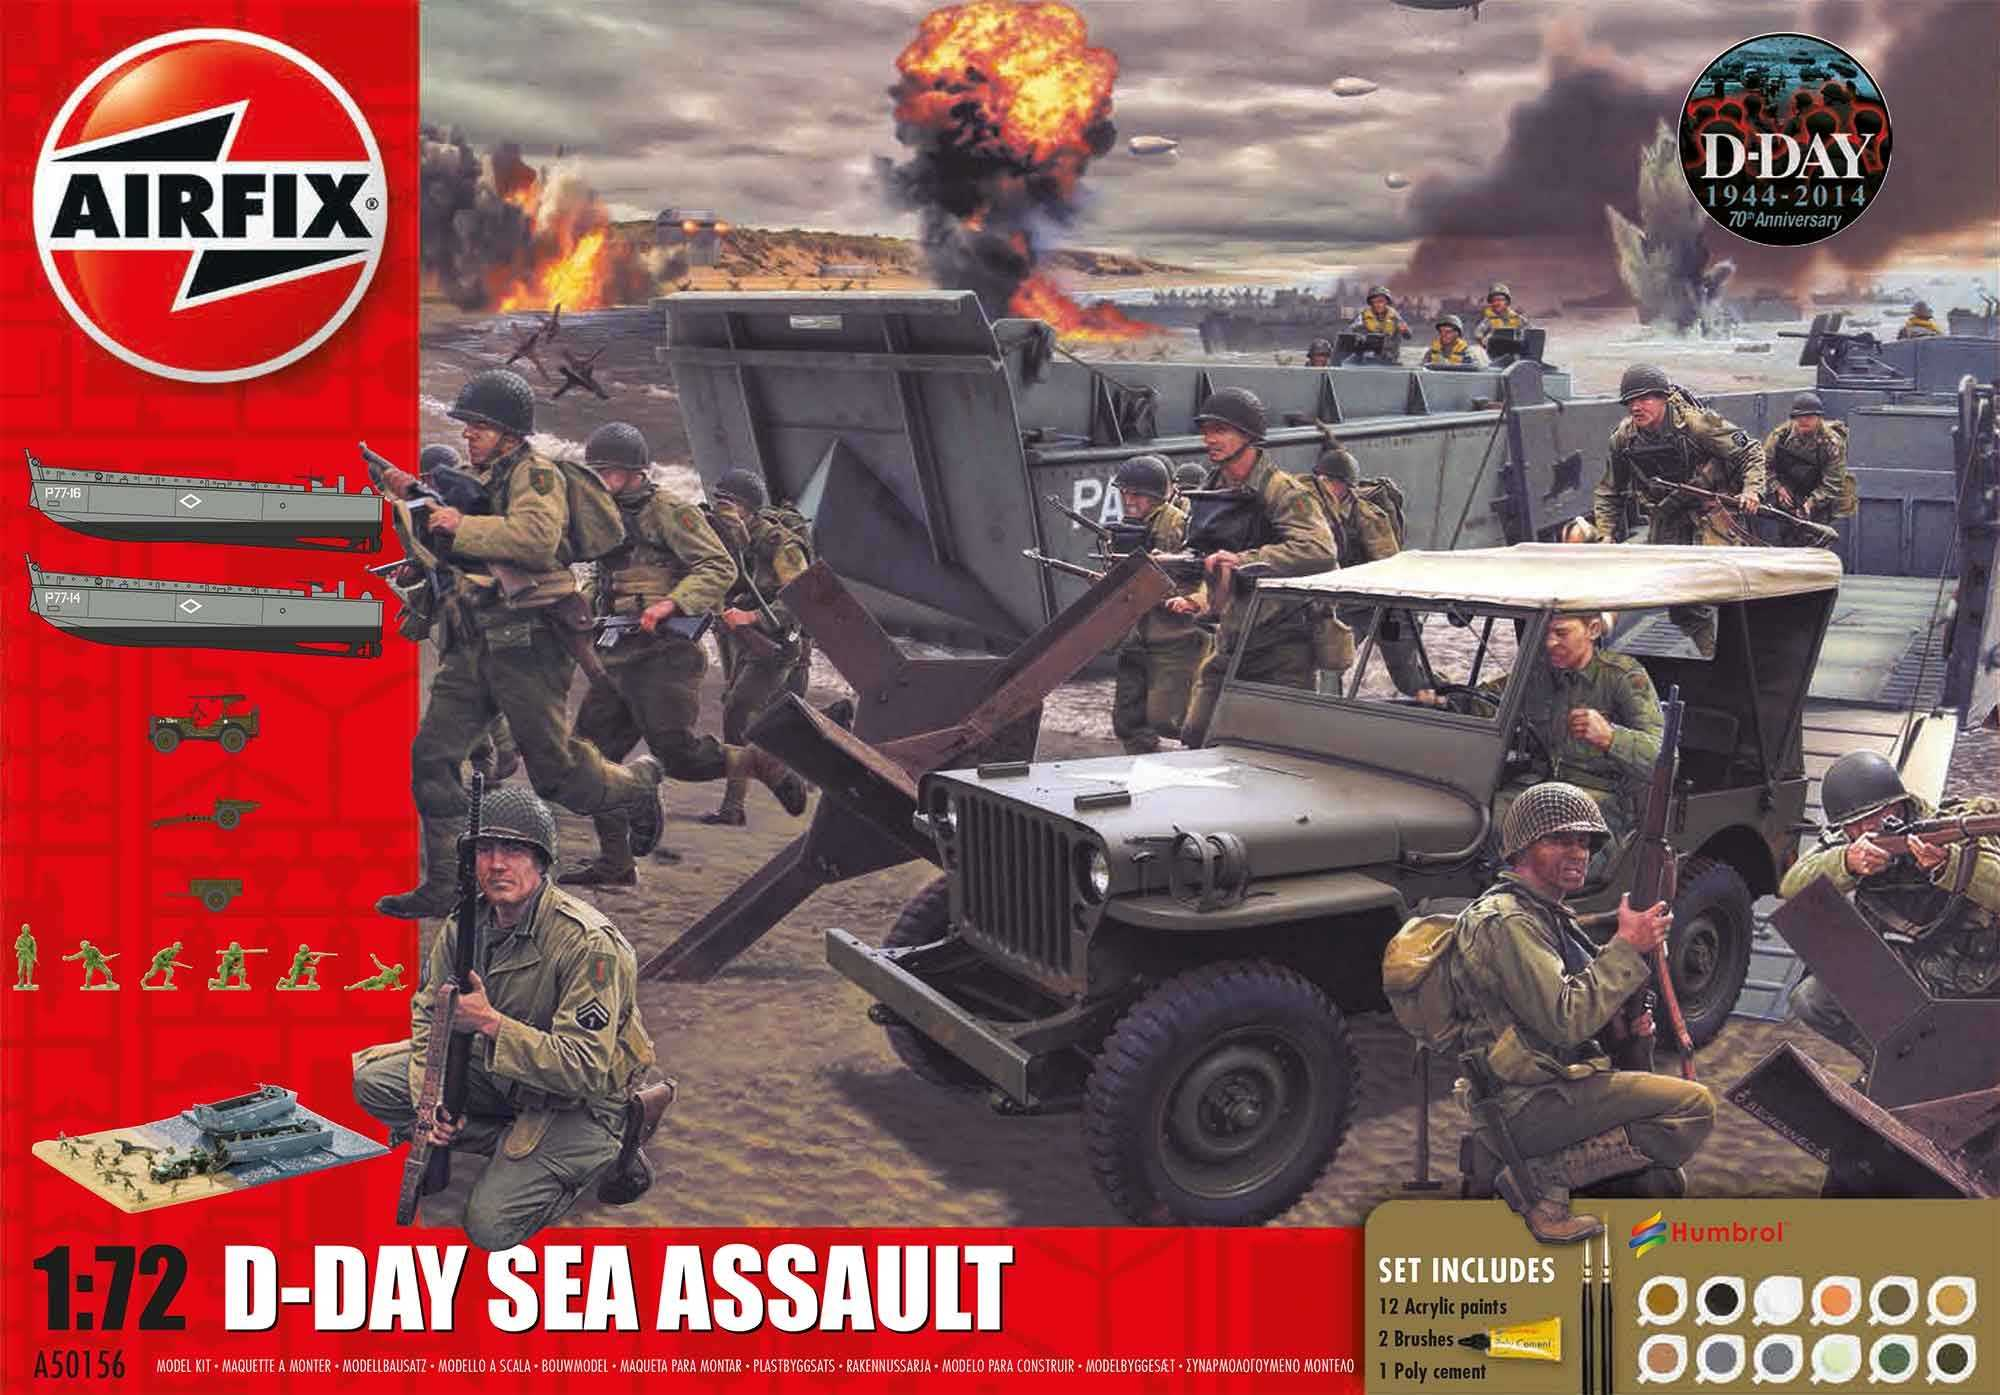 1:72 D-Day Sea Assault, 75th Anniversary Sea Assault (Gift Set)